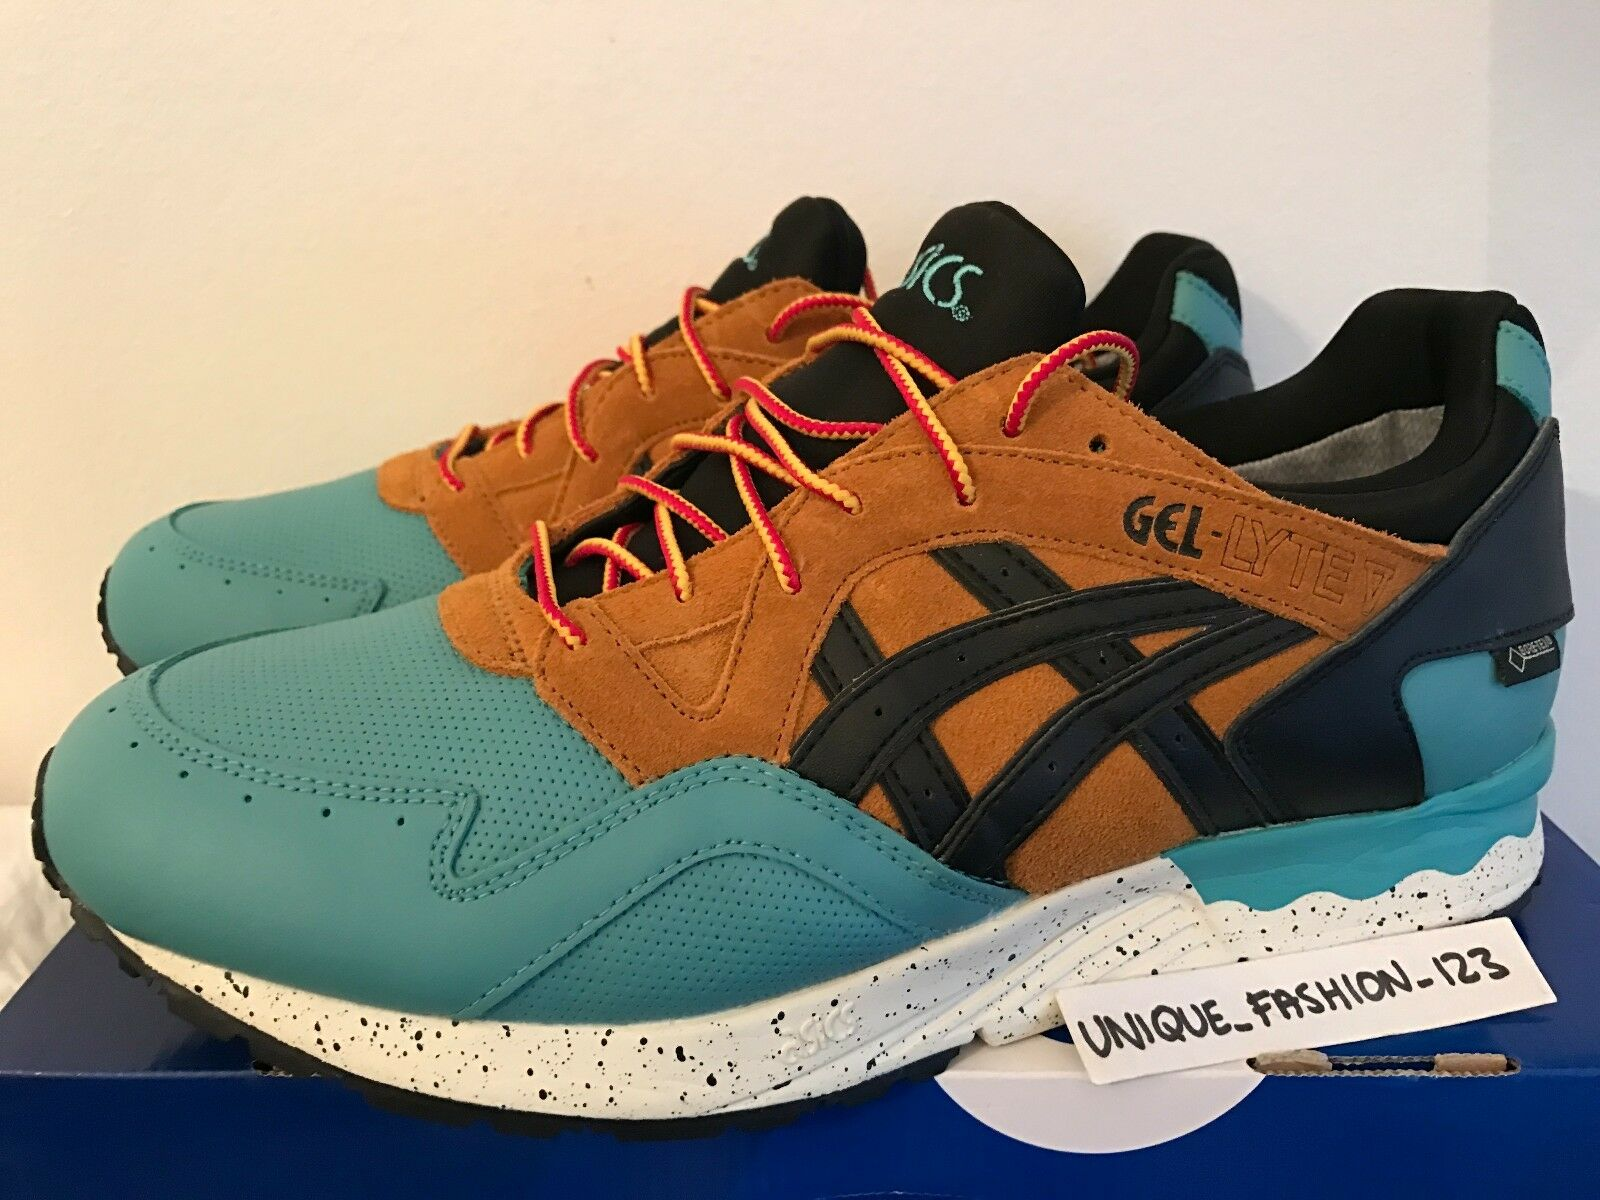 5d012d8d5405 ASICS GEL LYTE V 5 GORETEX US 11 11 11 GORE-TEX KINGFISHER ORANGE BLUE